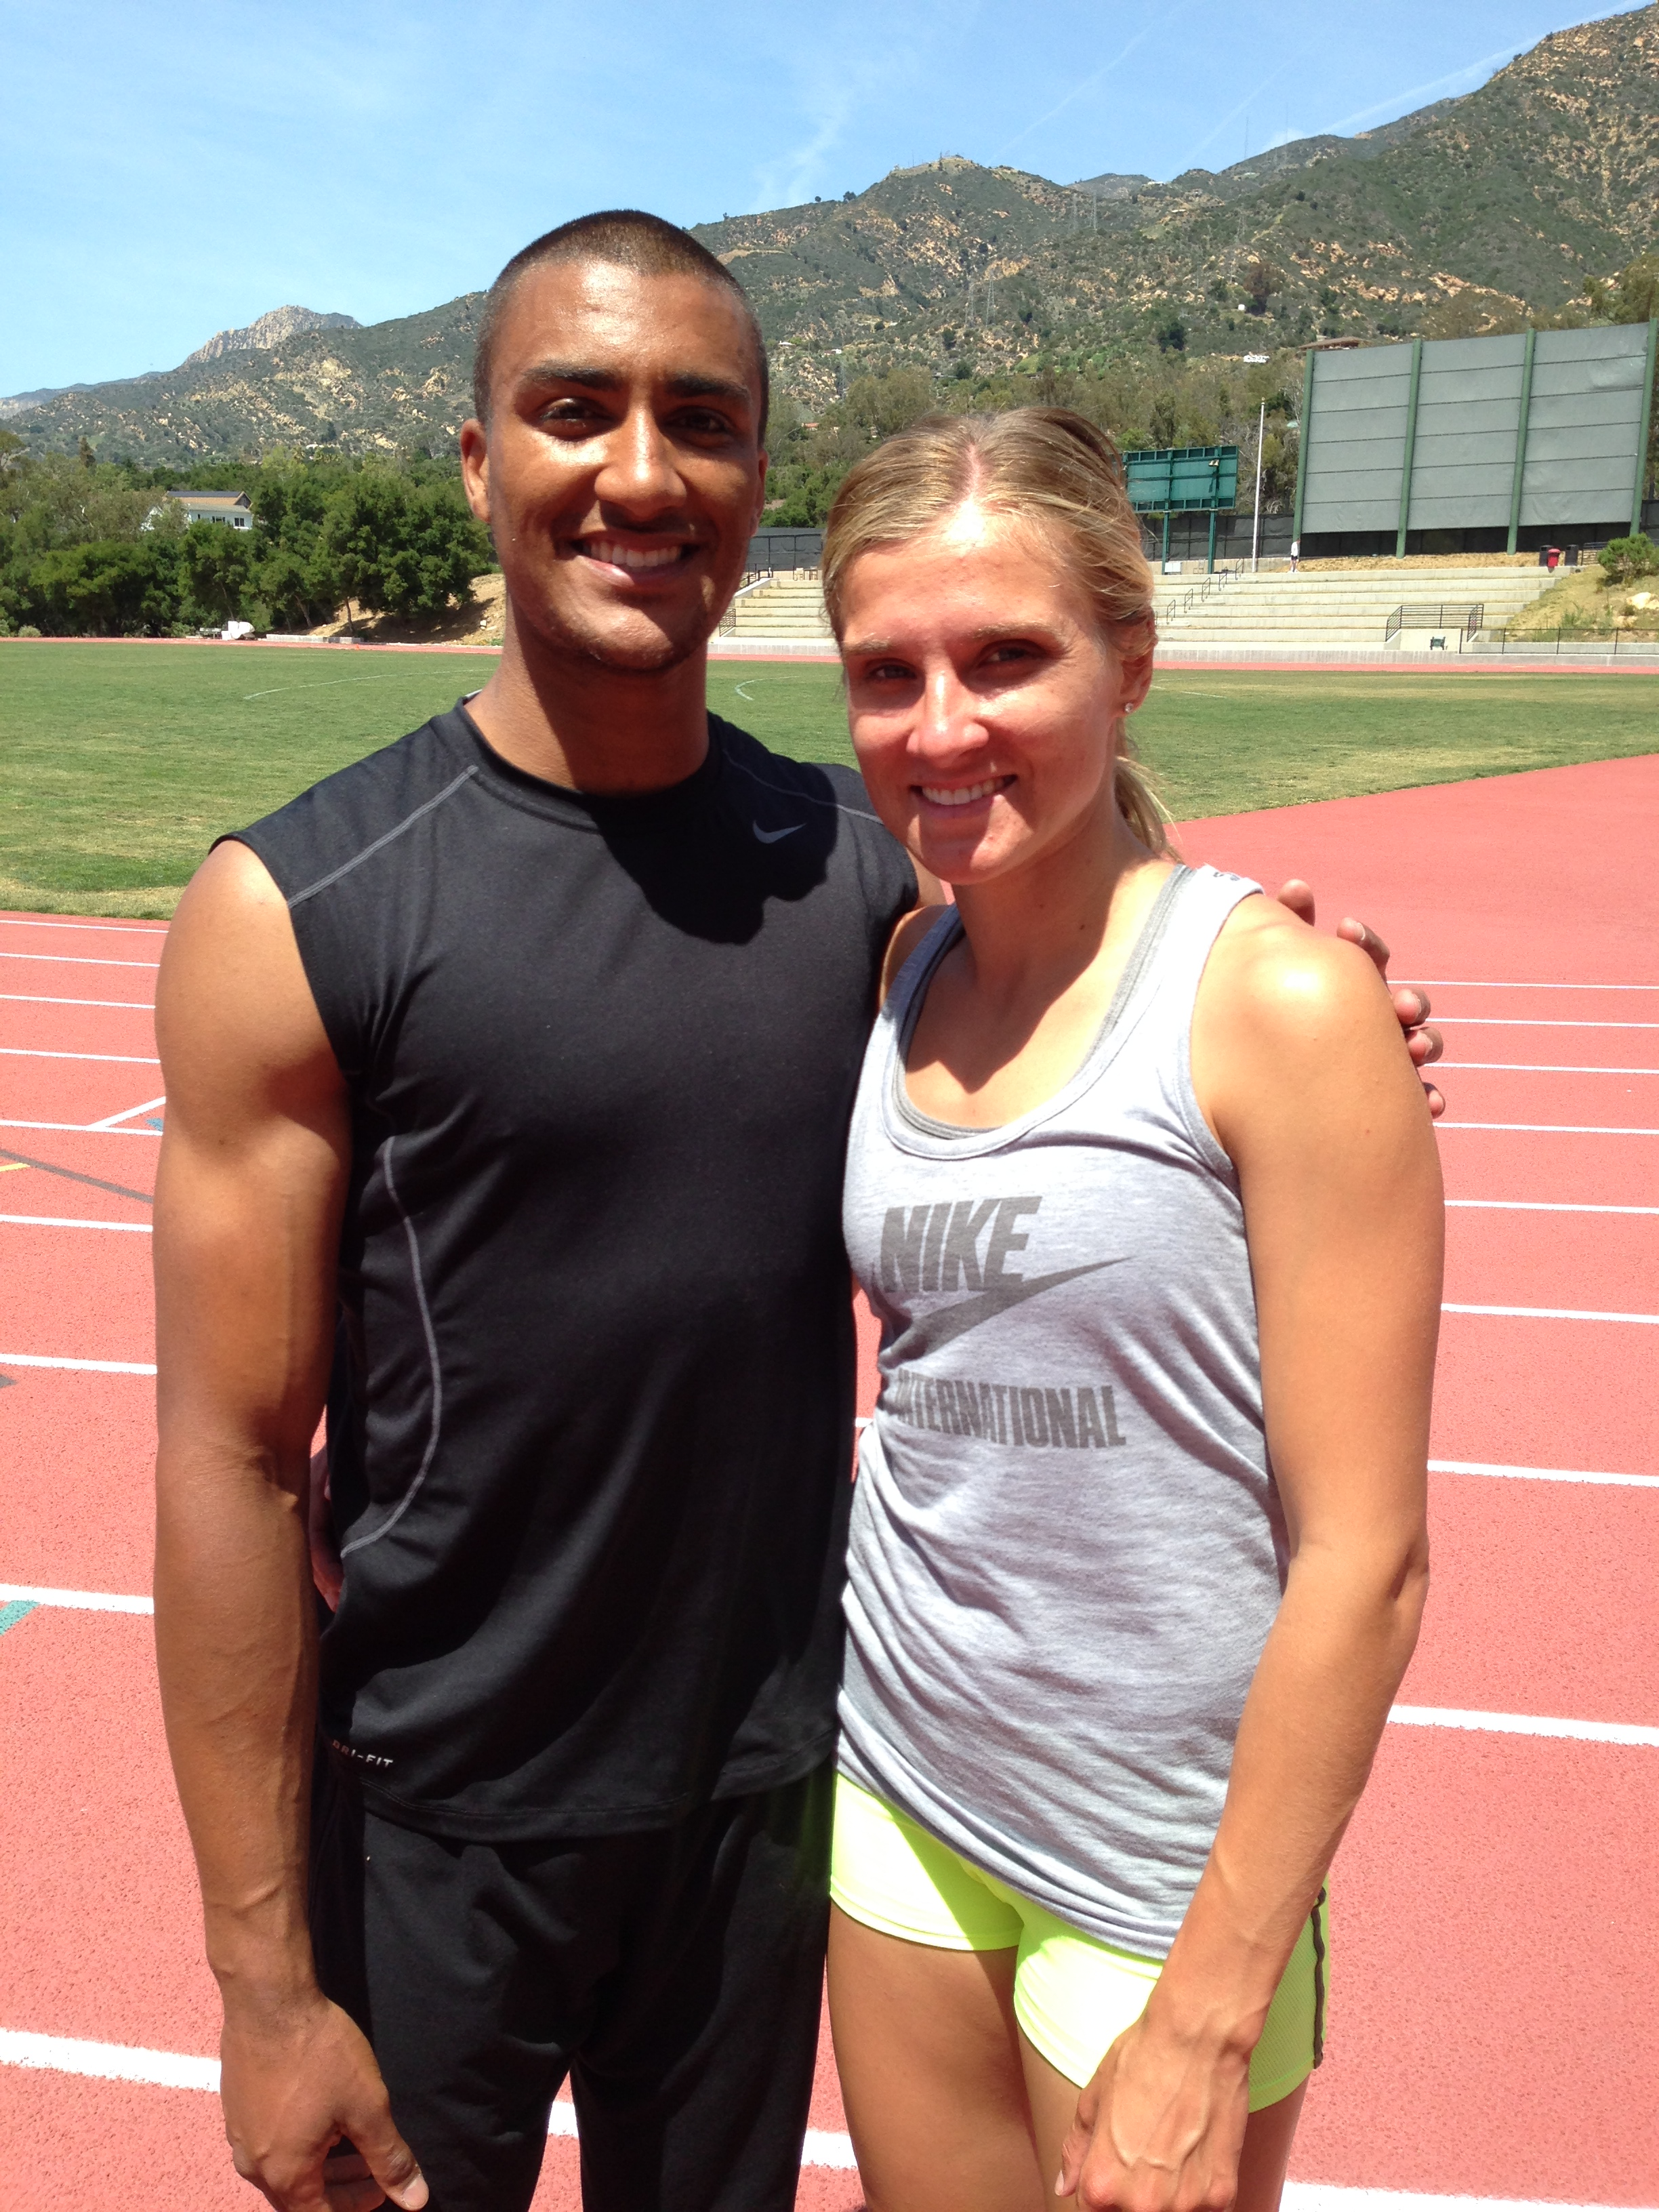 Ashton Eaton and Brianne Theisen Eaton after practice at Westmont College